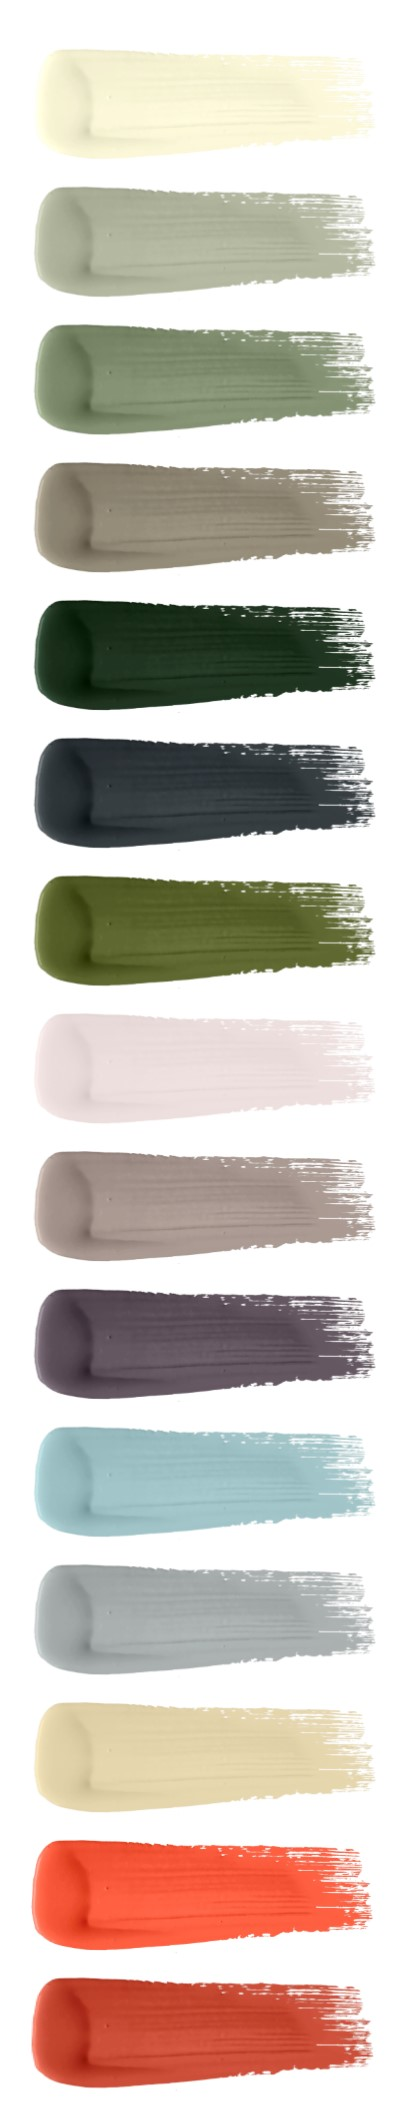 Alitex Collection colour swatches by M&L Paints